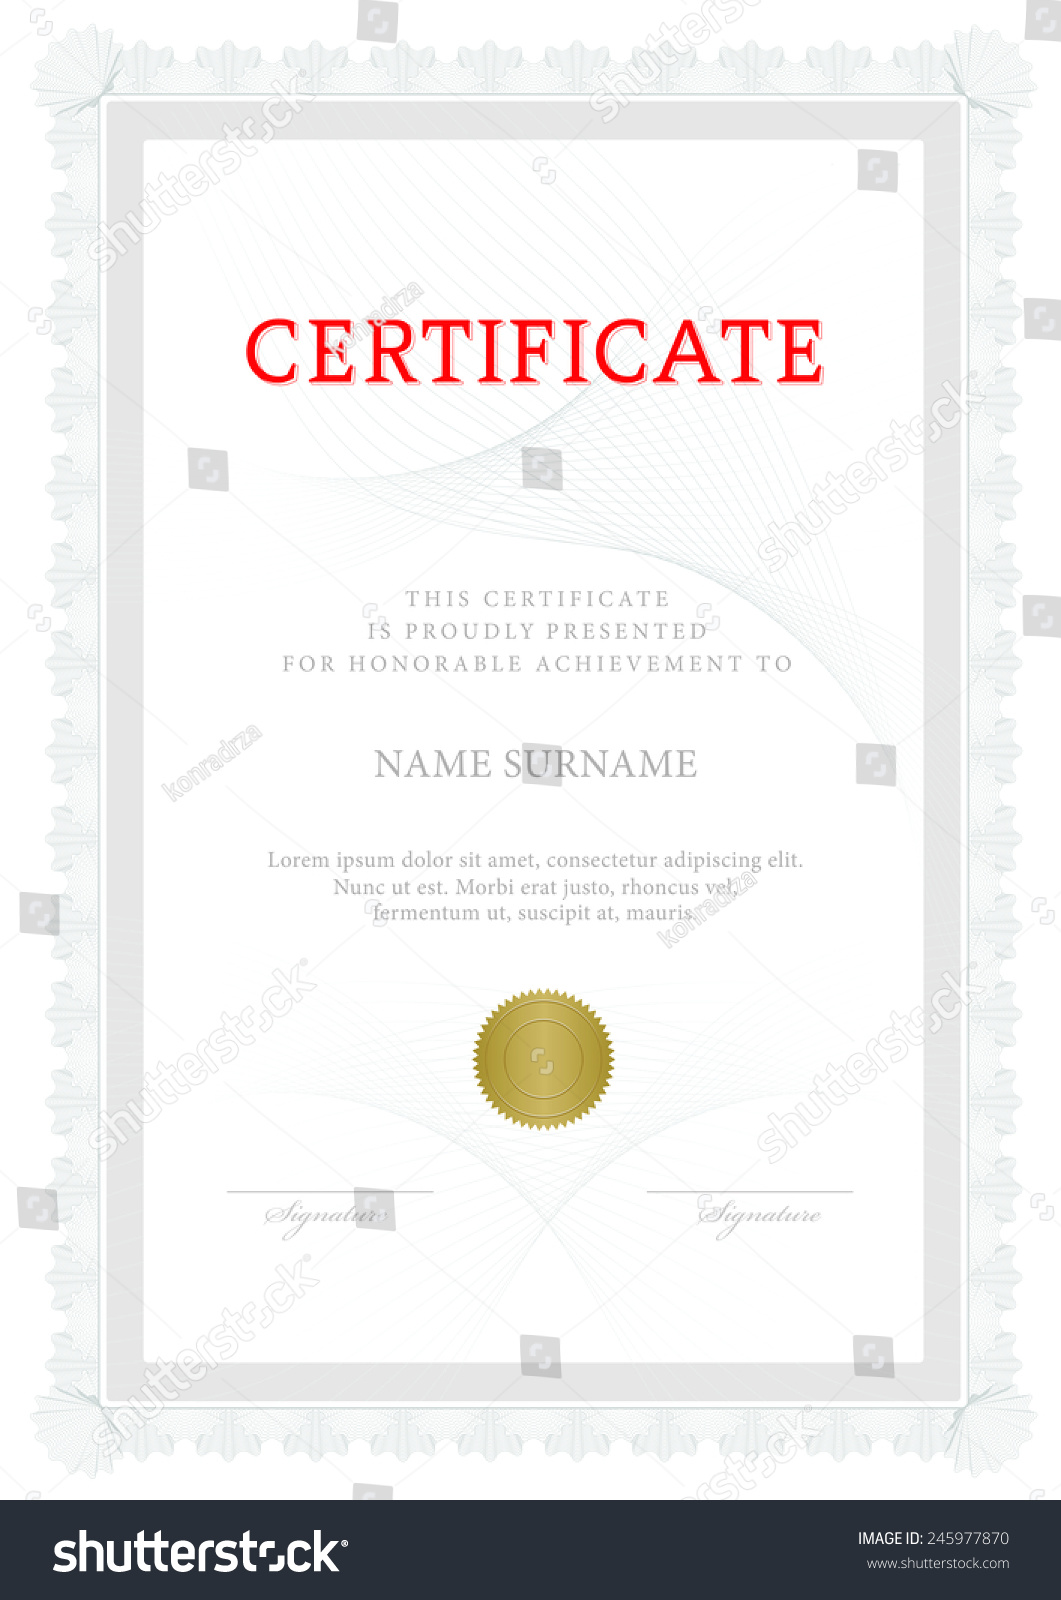 Certificate of shares template choice ticket printable uk share certificate template gallery templates example free stock vector certificate diploma of completion vector design yadclub Choice Image